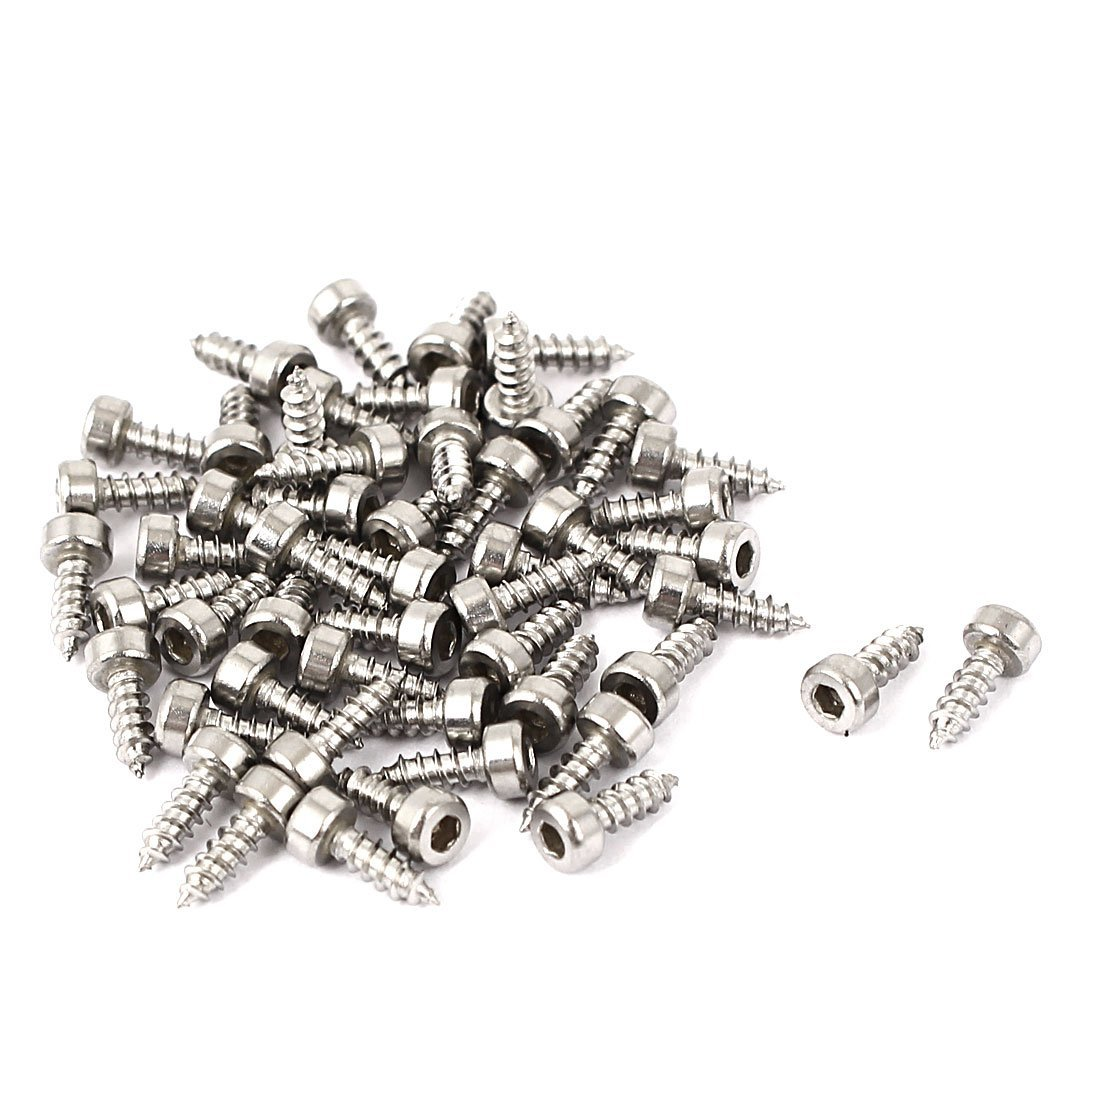 a16032300ux0234 Hexagon Head Screw M2x6mm Self Tapping Screws 50 Pieces Pack of 50